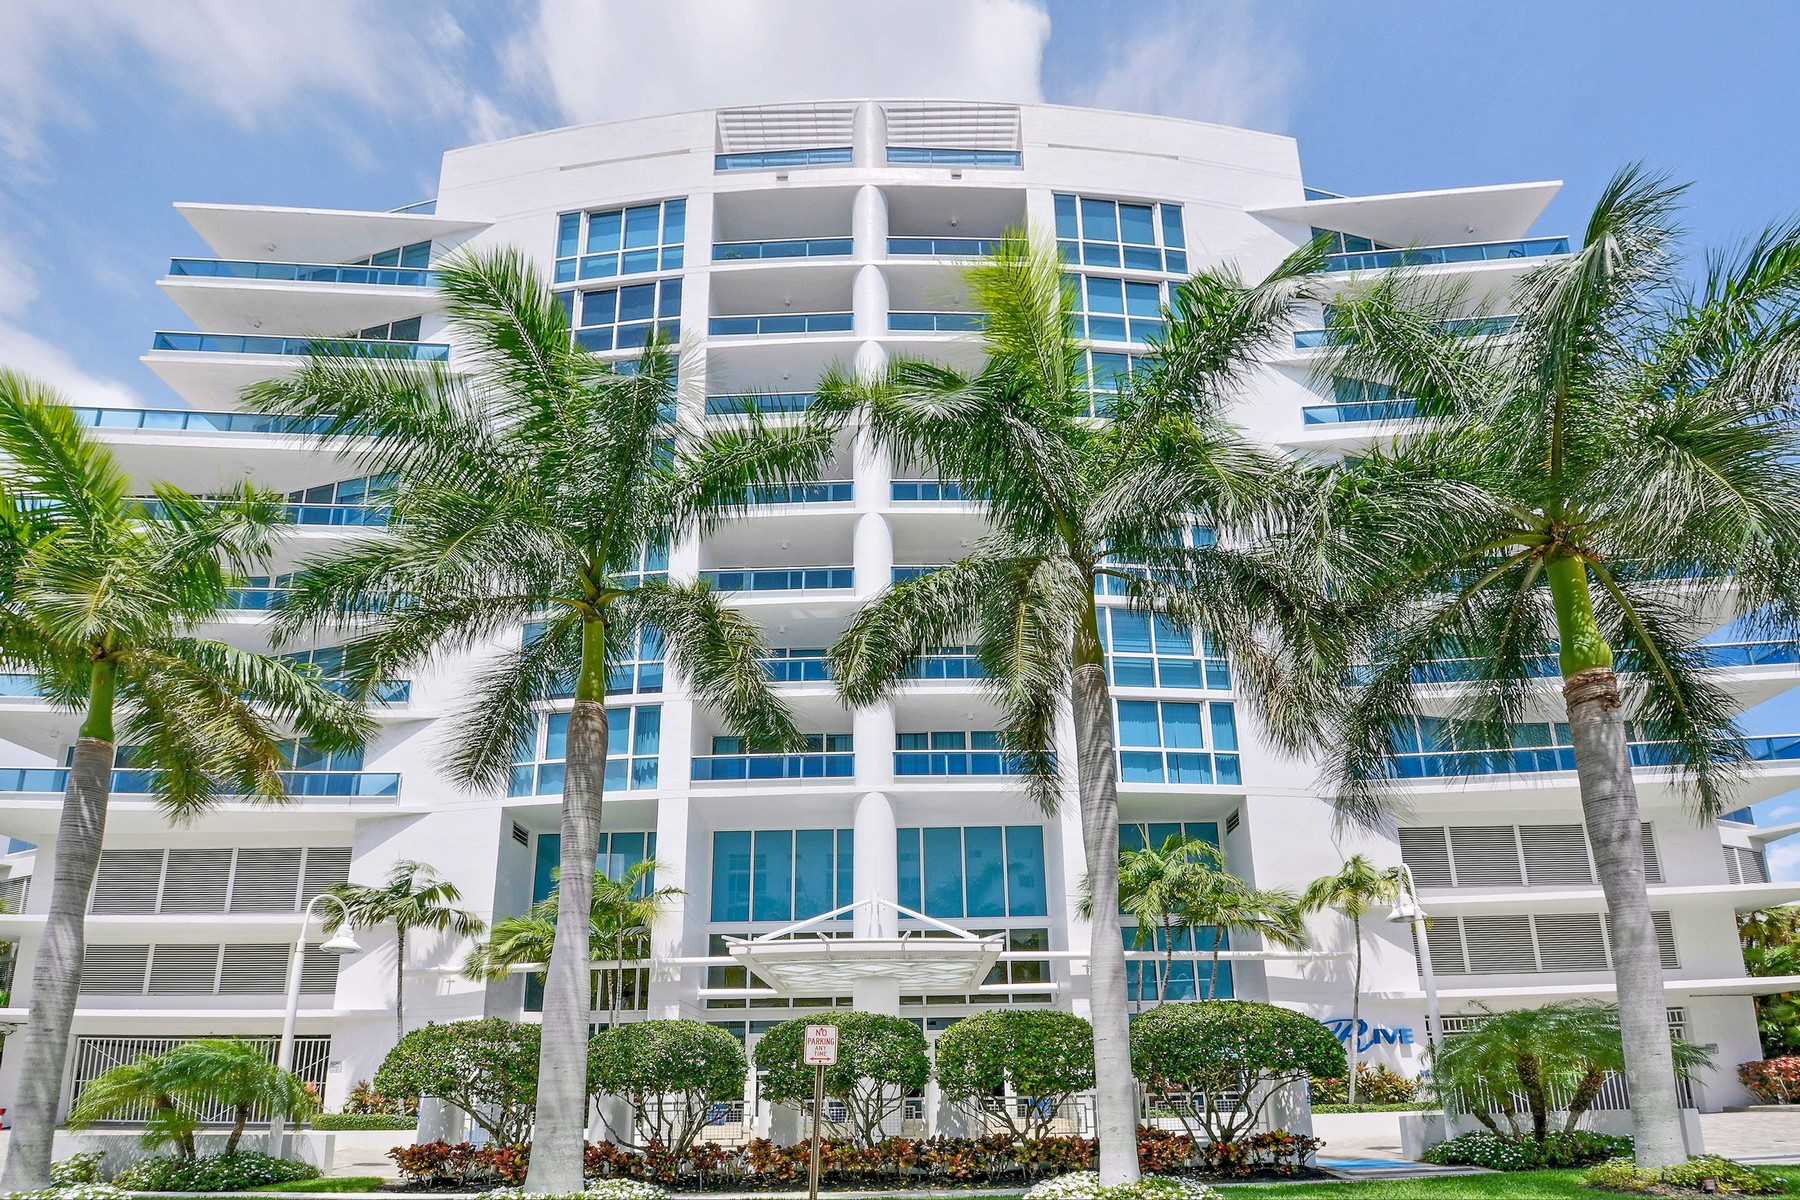 Condominium for Sale at La Rive Bayshore Drive #704 Fort Lauderdale, Florida 33304 United States